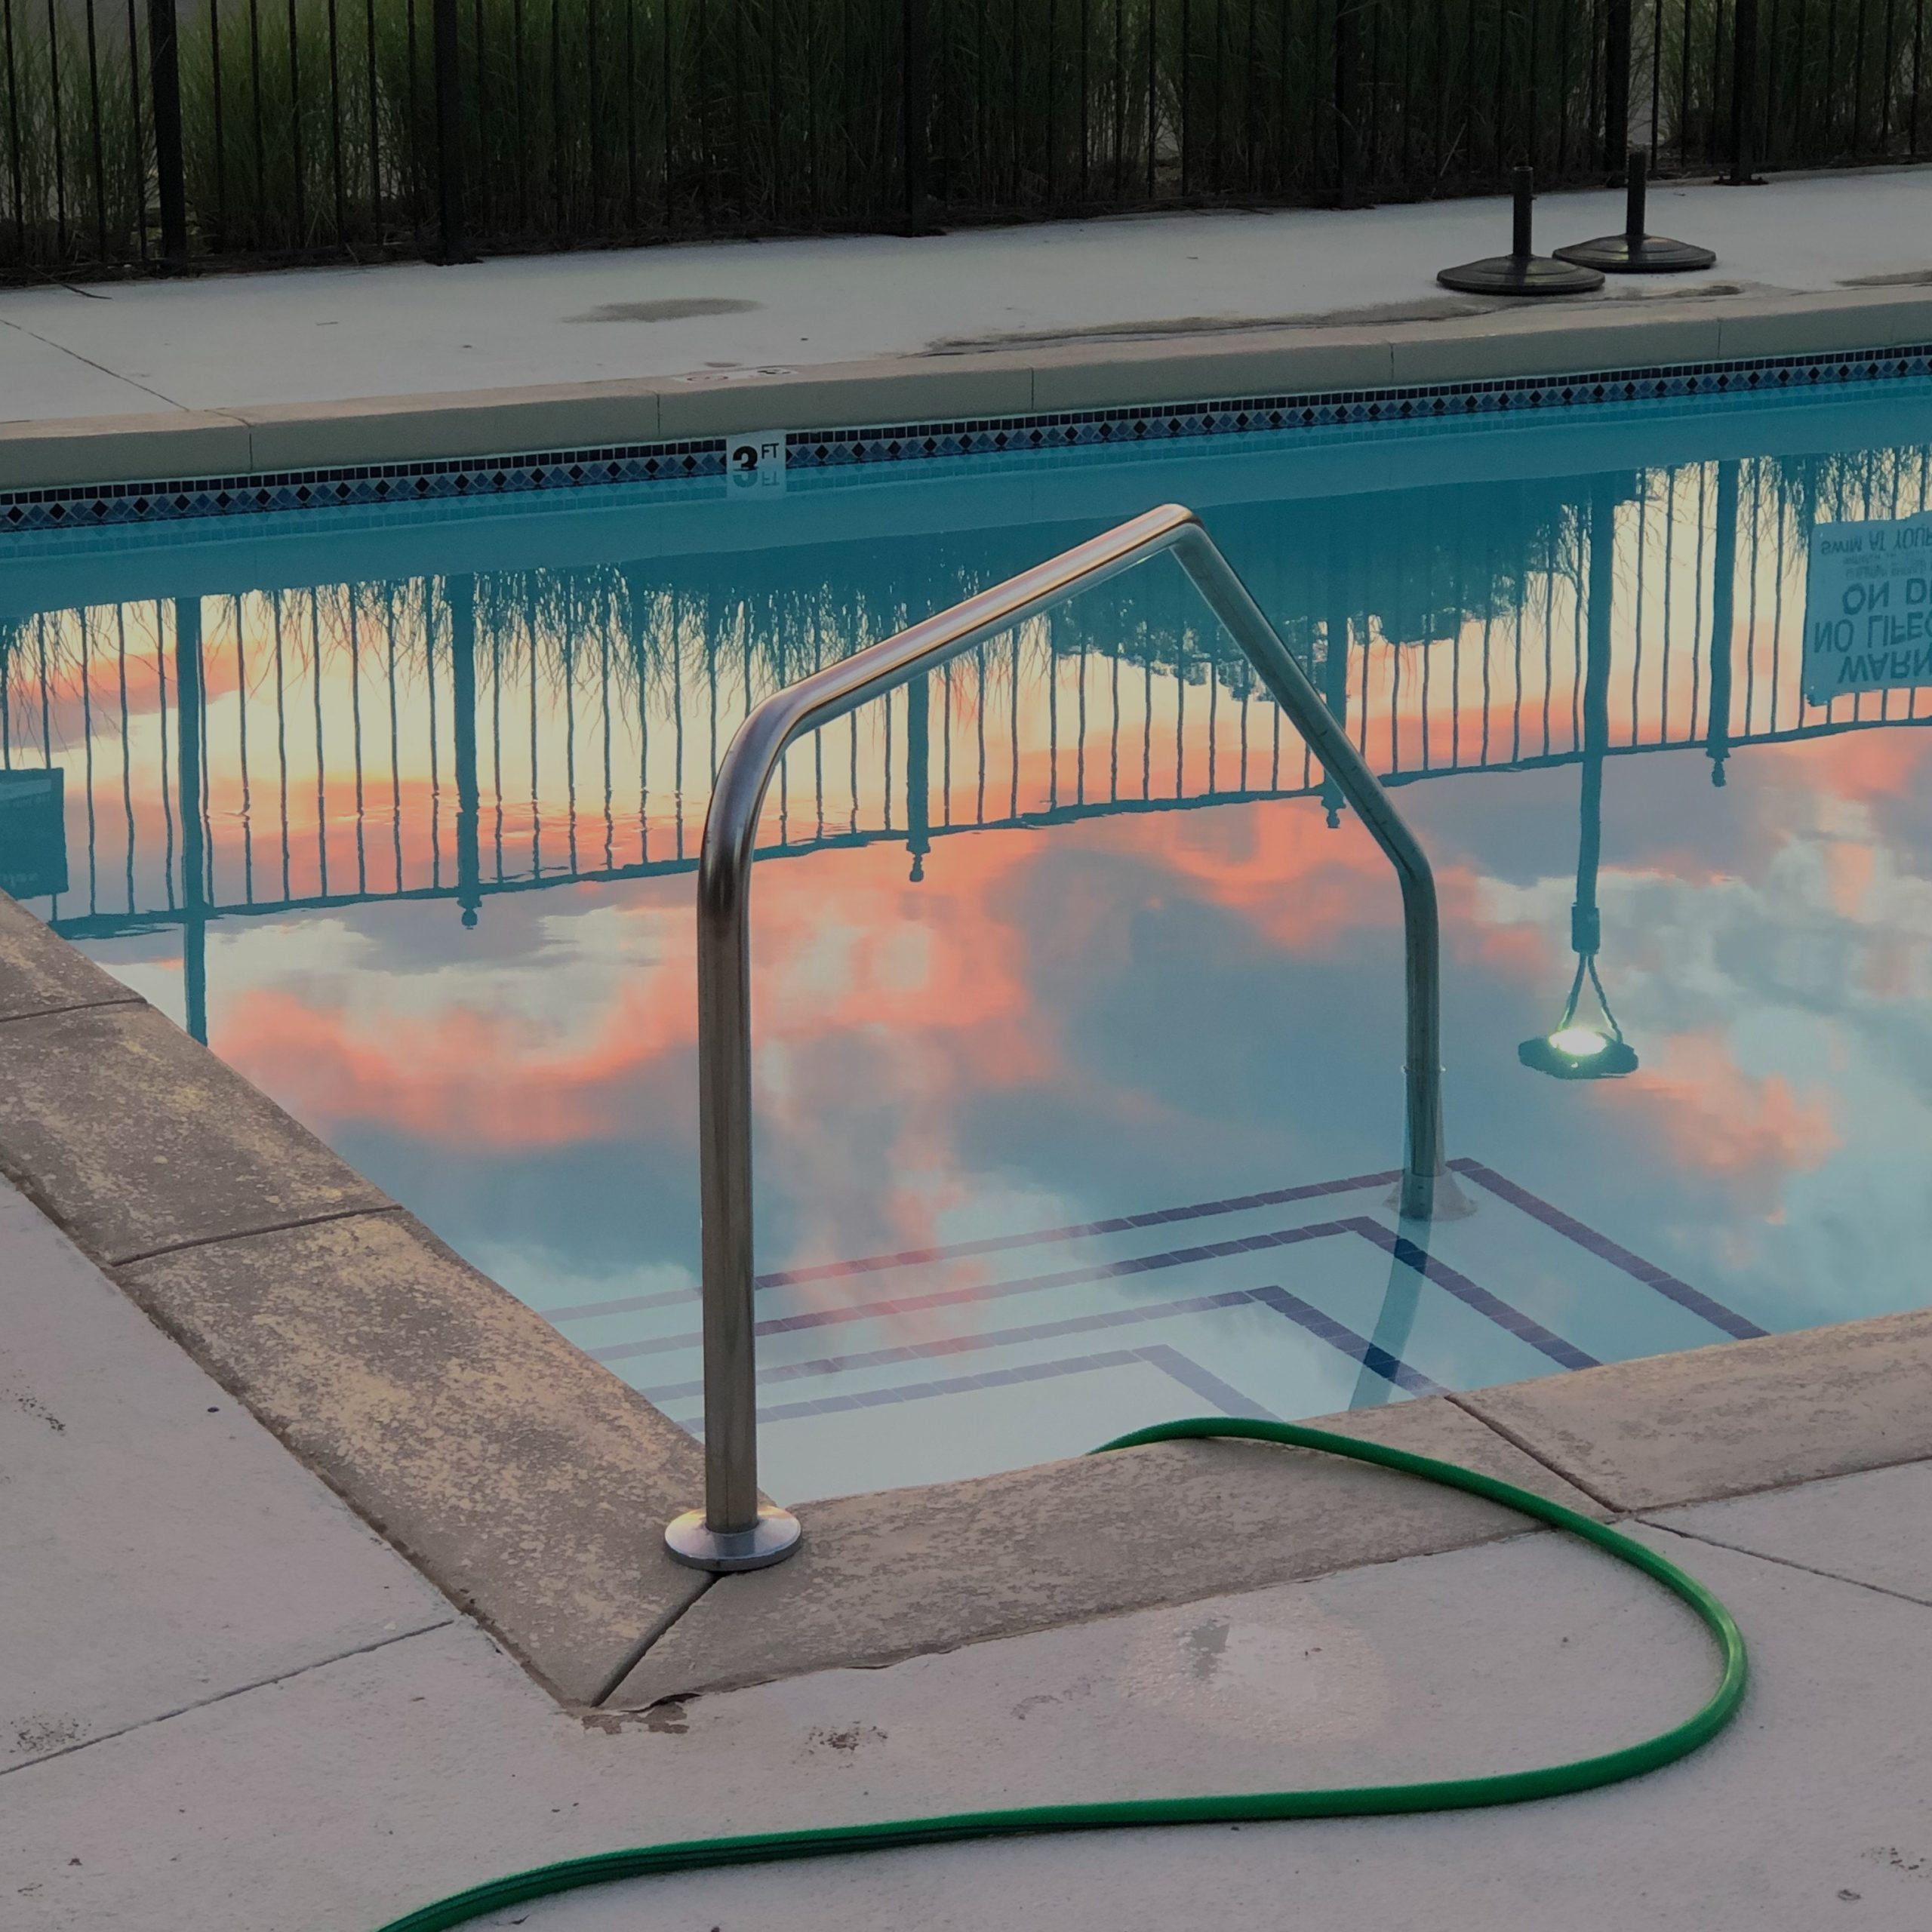 Tips to vacuum a pool